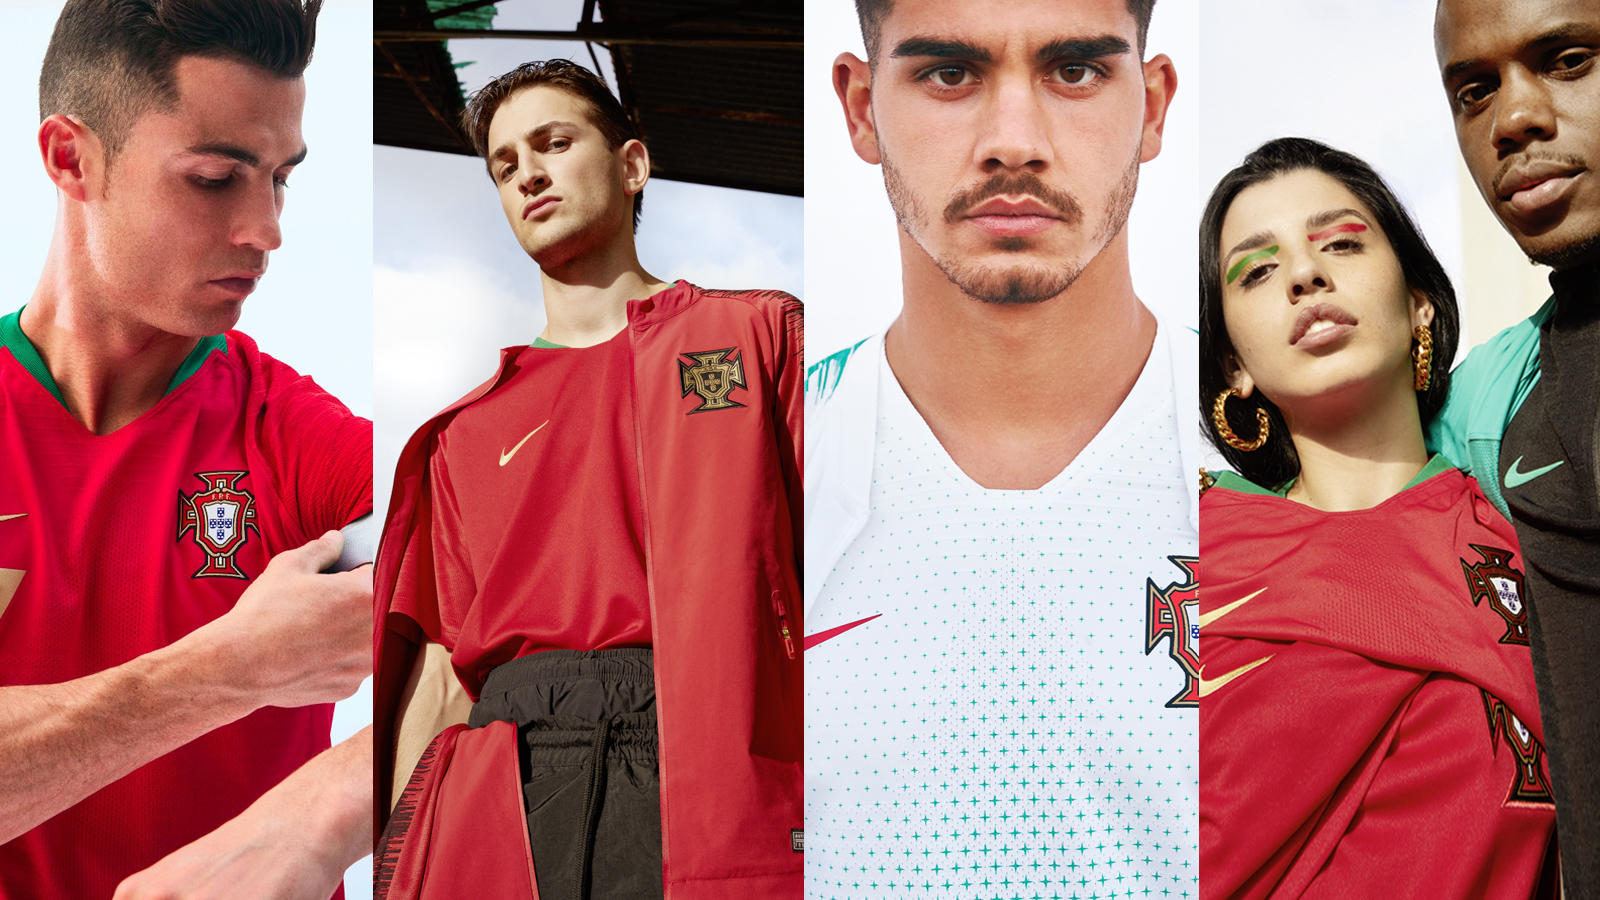 Hail Europe's Kings: Portugal's New Kits Flash Gold and Kinetic Green 27